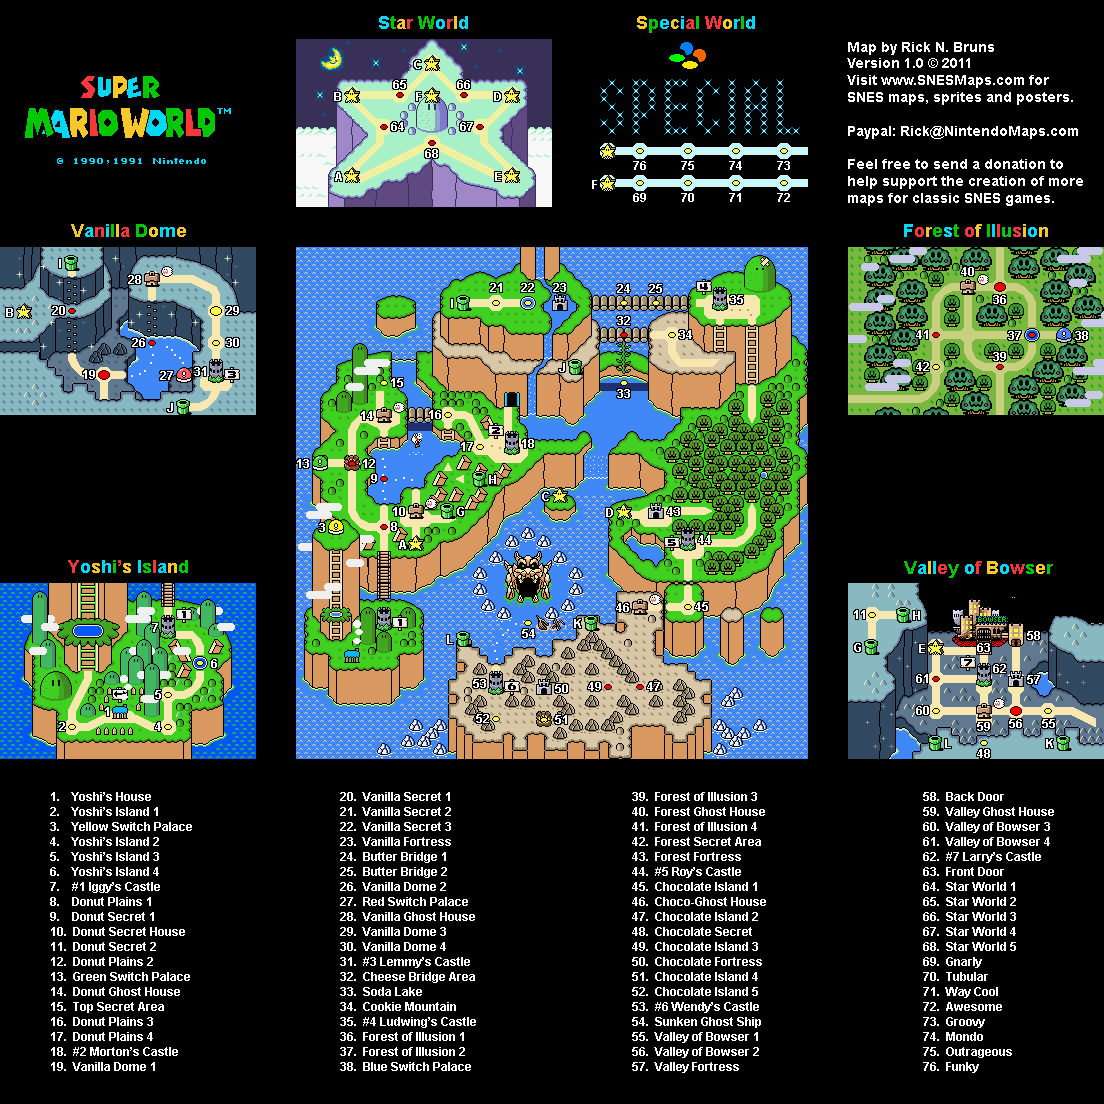 Super Mario World Map Super Mario World   Overworld Super Nintendo SNES Map Super Mario World Map